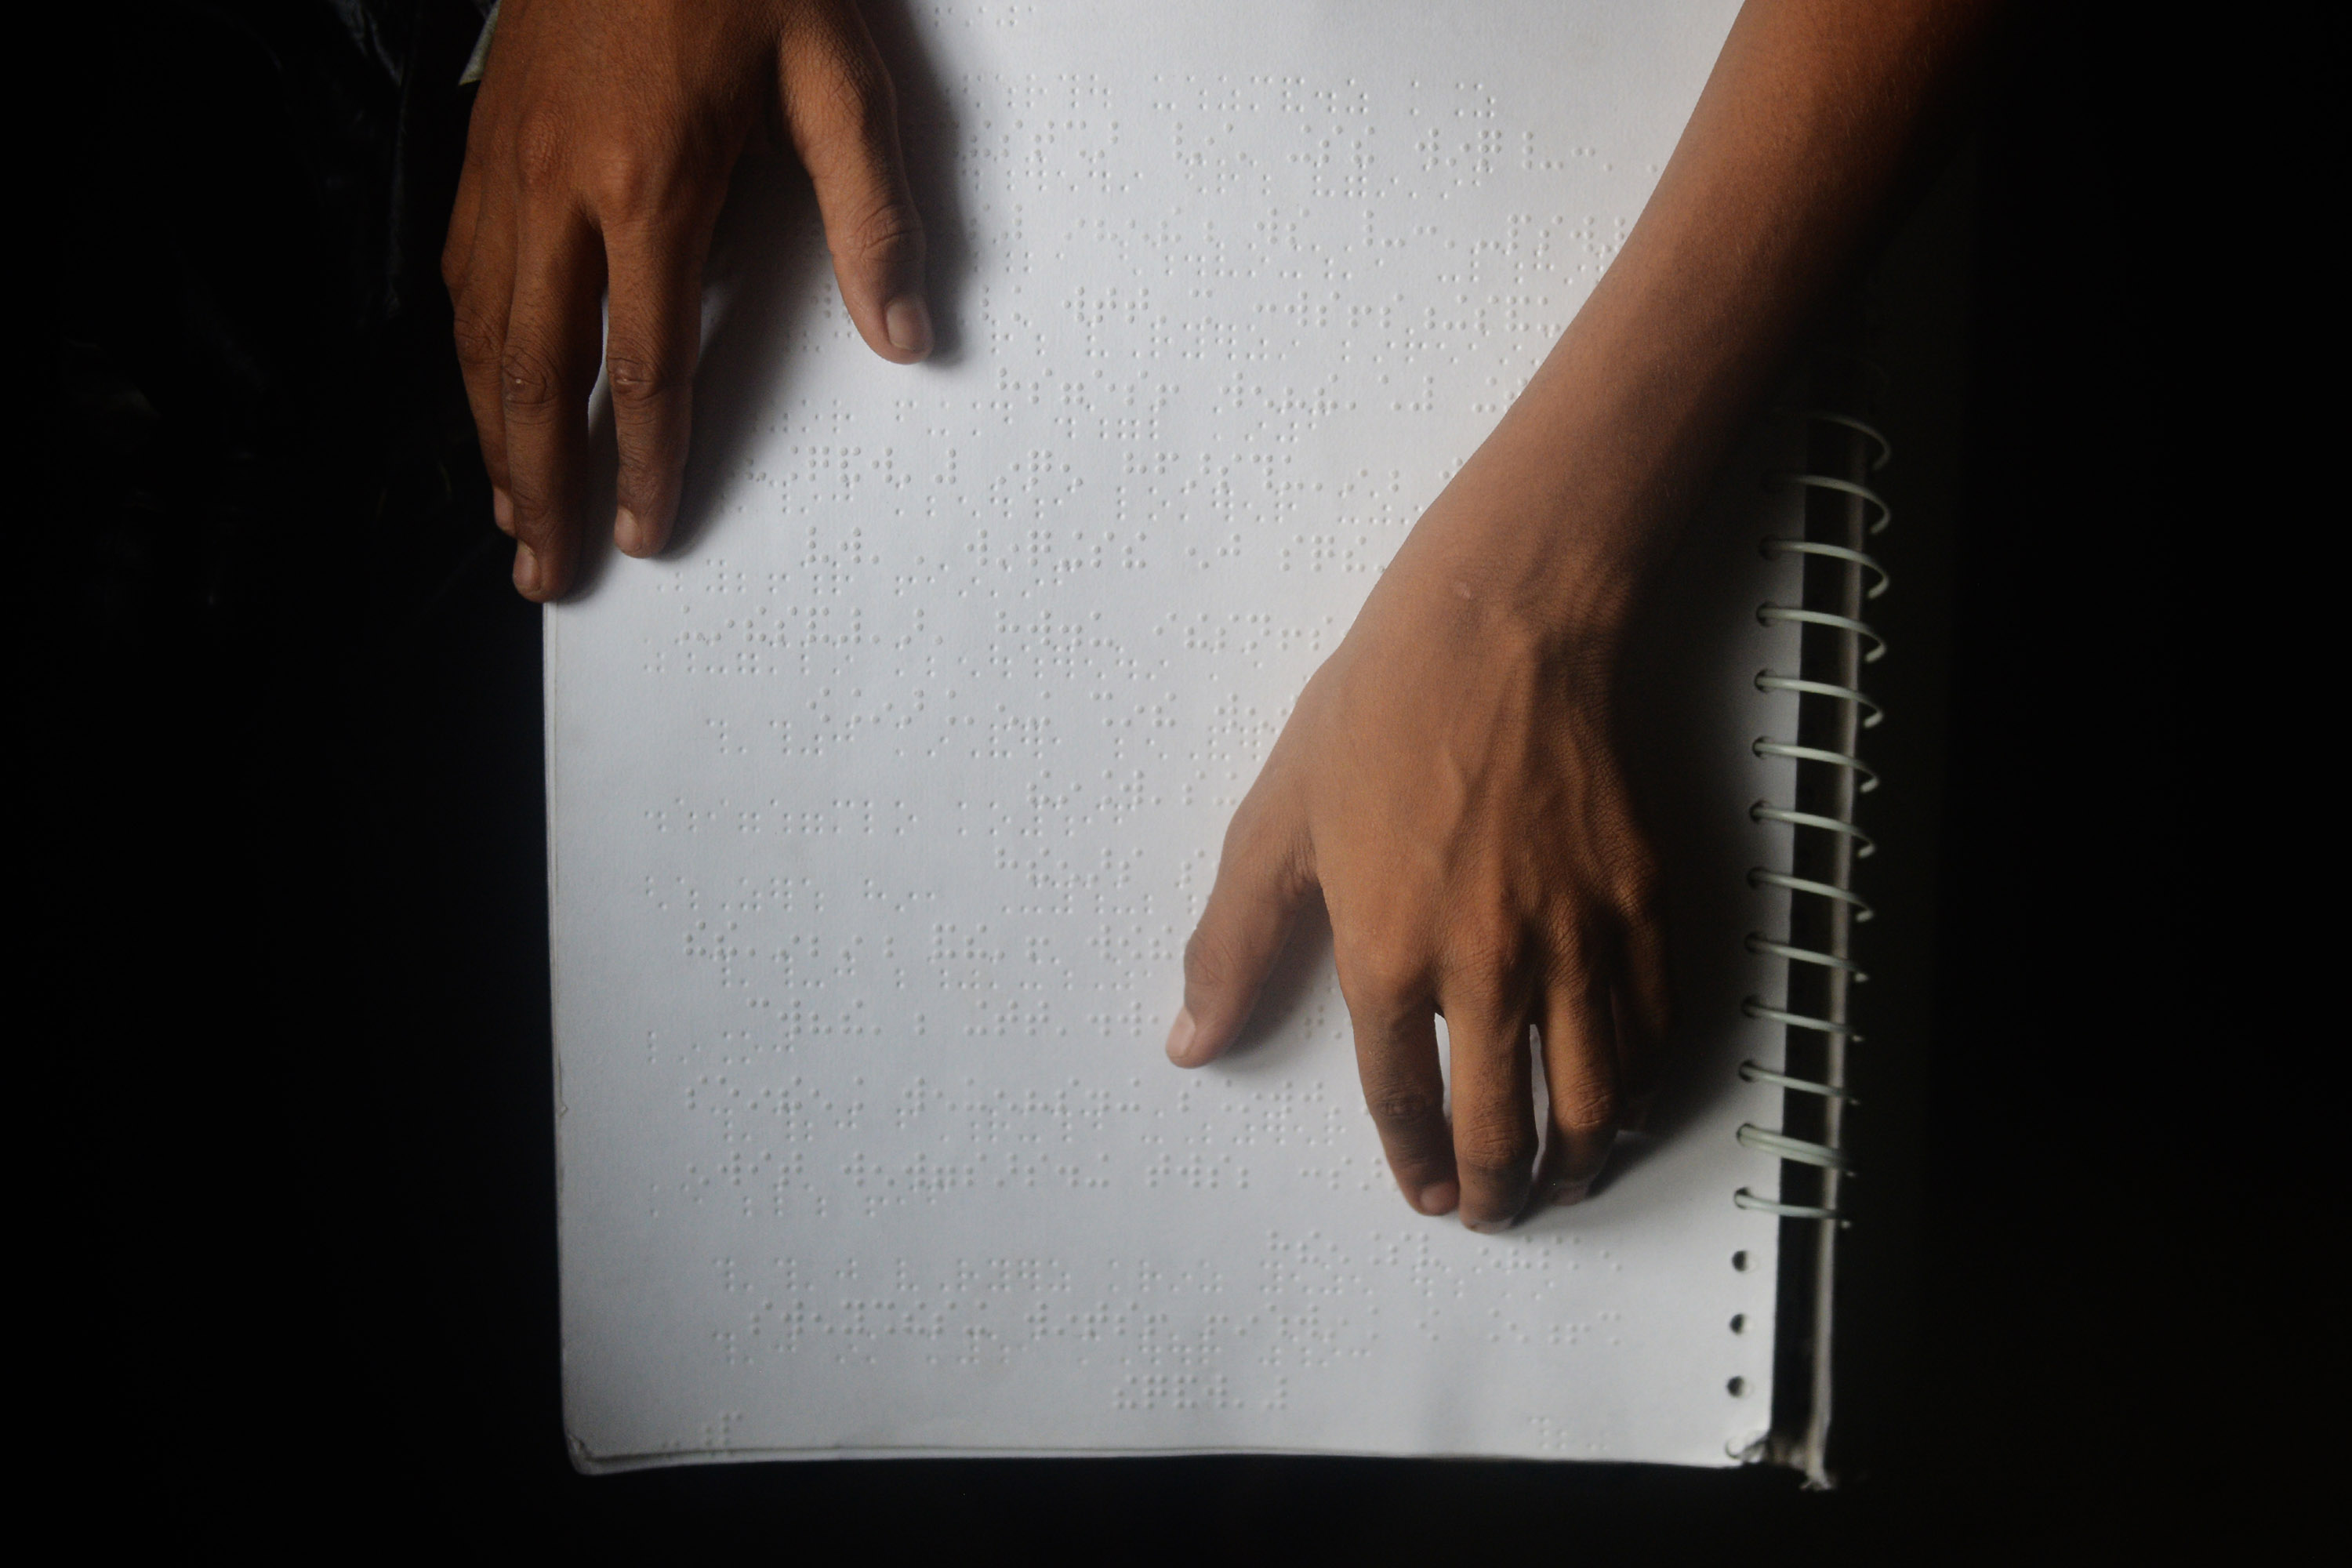 Study material in Braille. Credit: Sutirtha Chatterjee